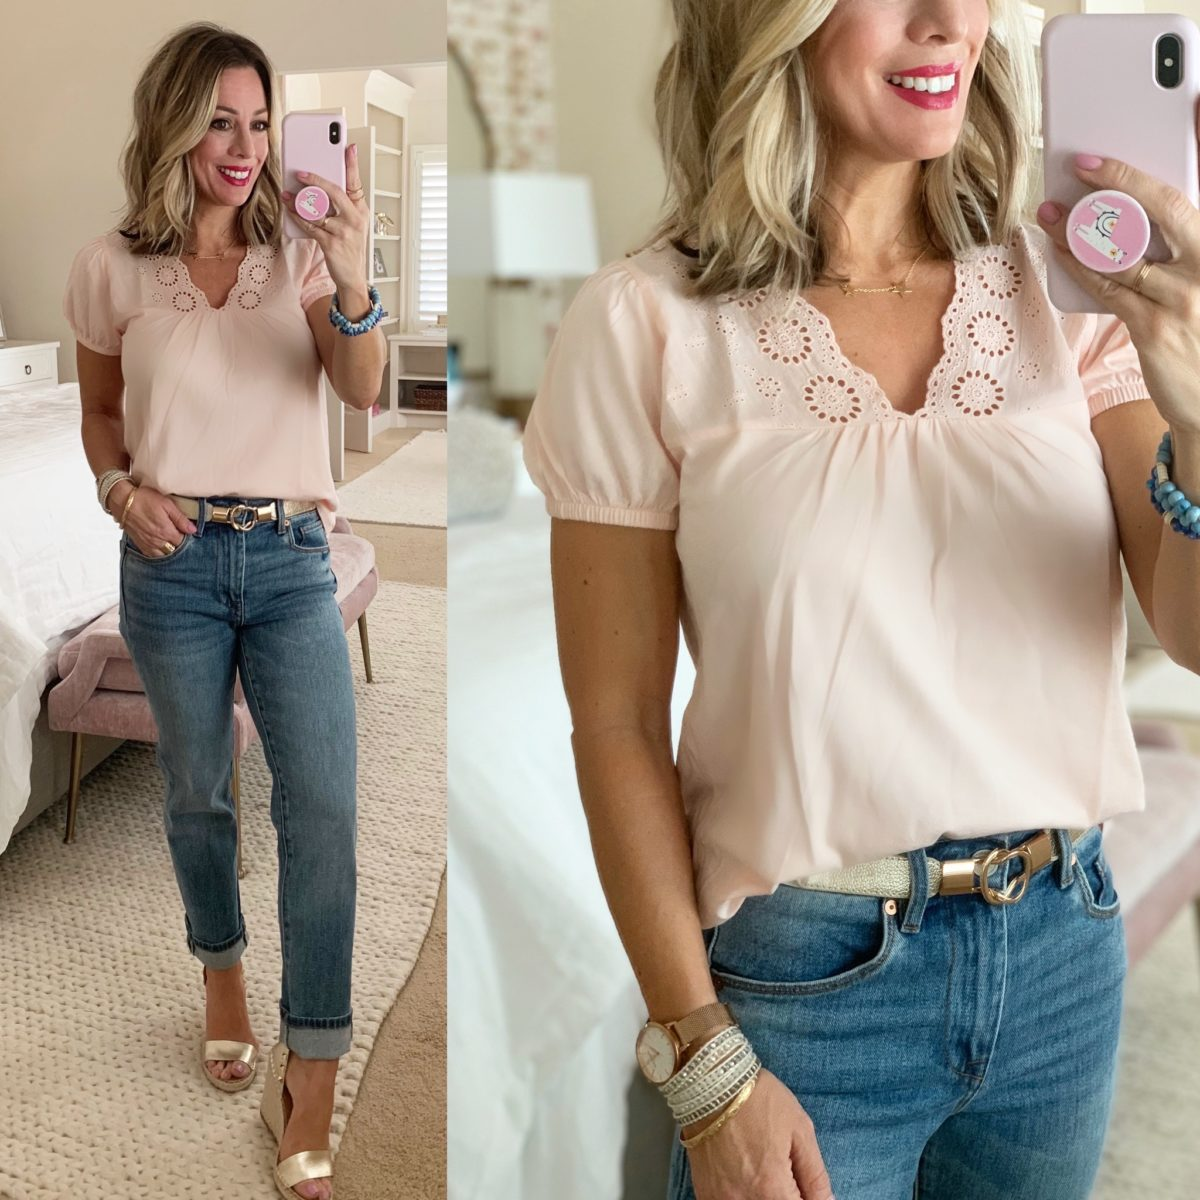 Embroidered Puff Sleeve Top, Jeans, Gold Bet, Gold Wedges